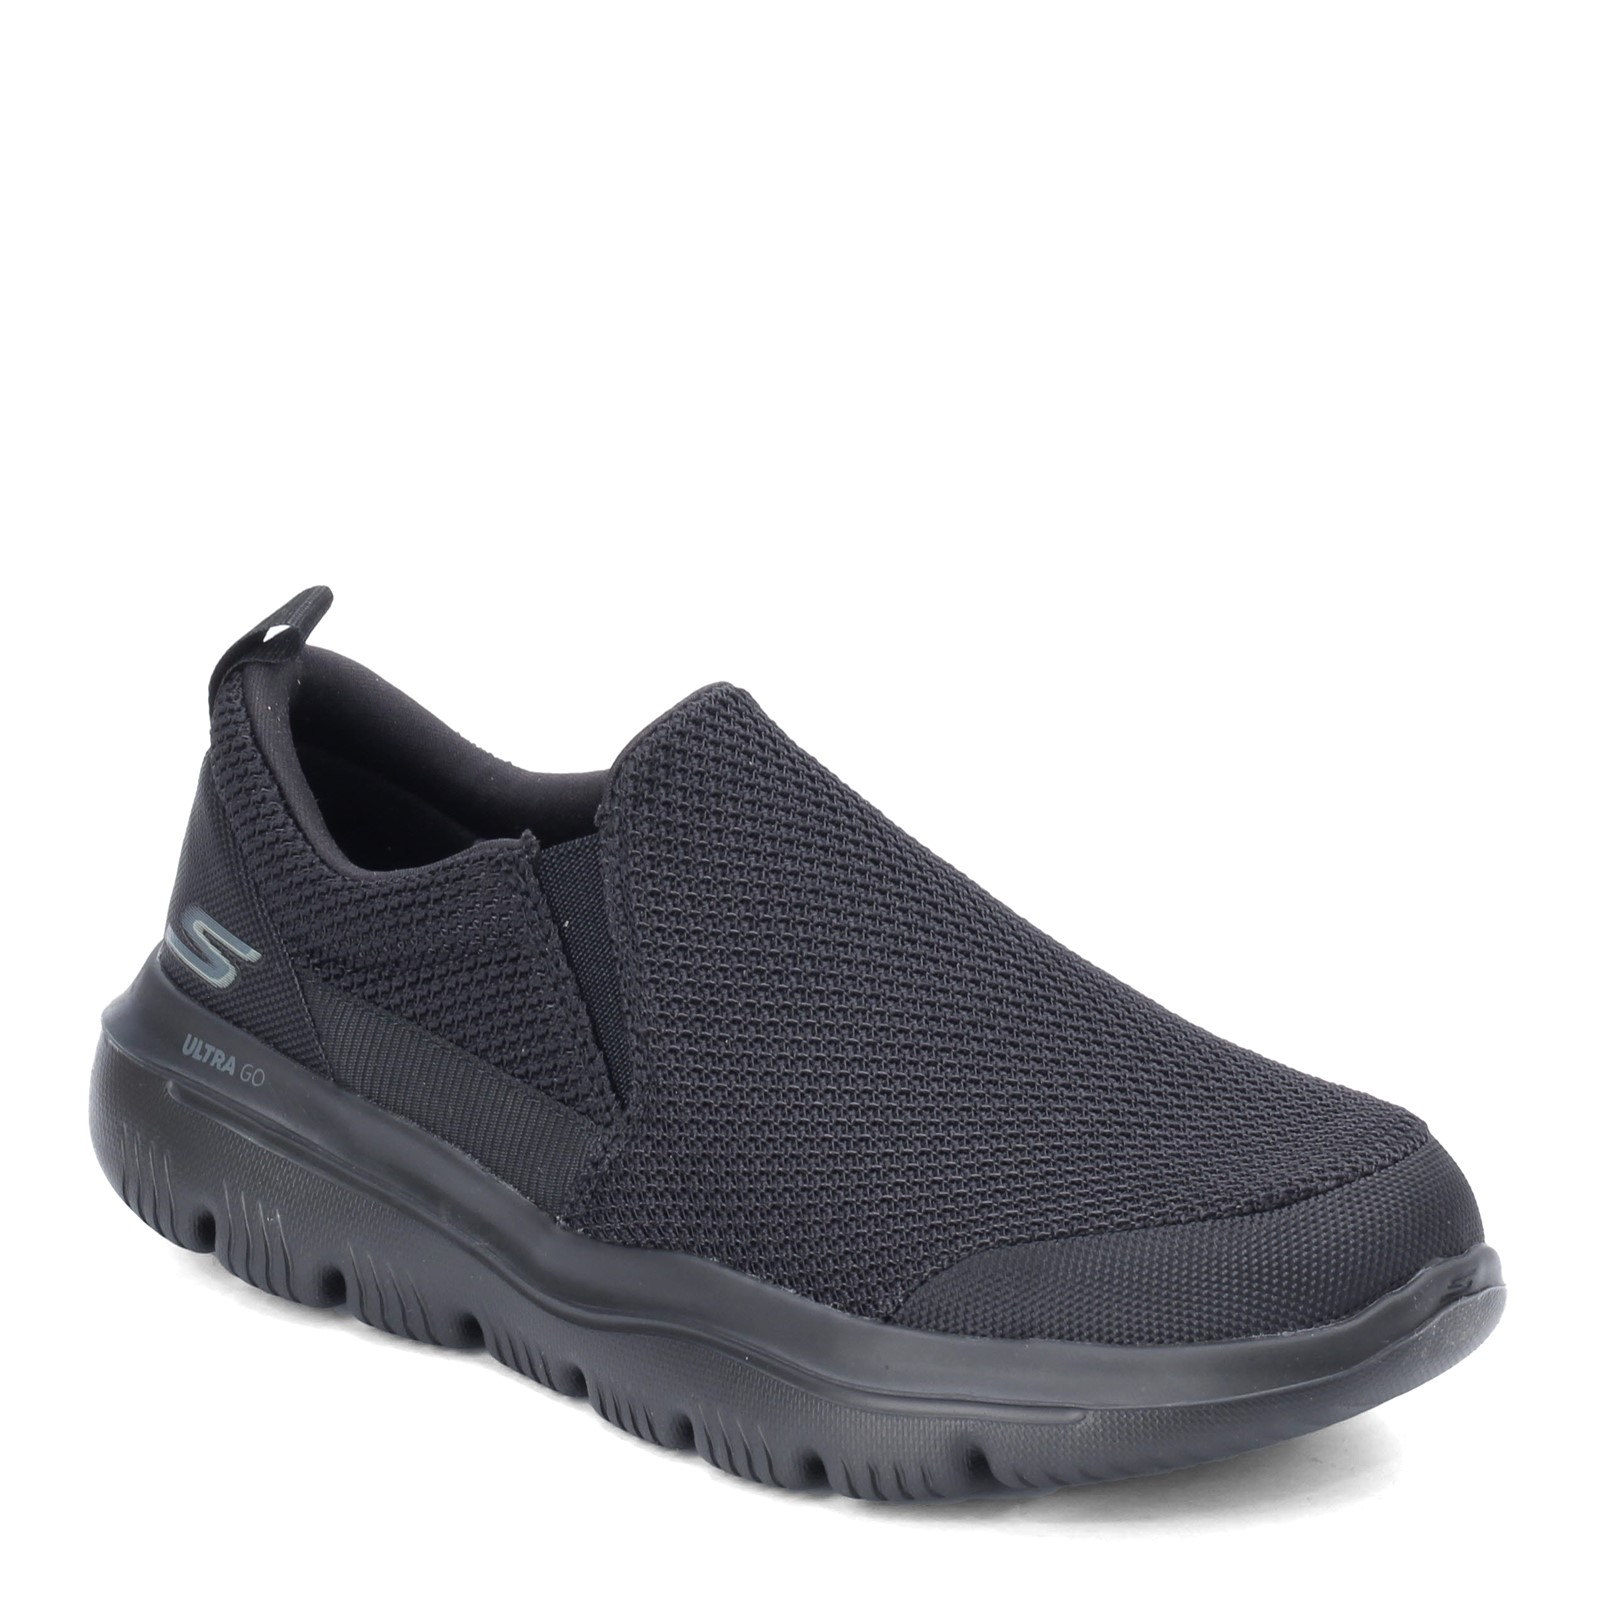 Men's Skechers Performance, GOwalk Evolution Ultra Impeccable